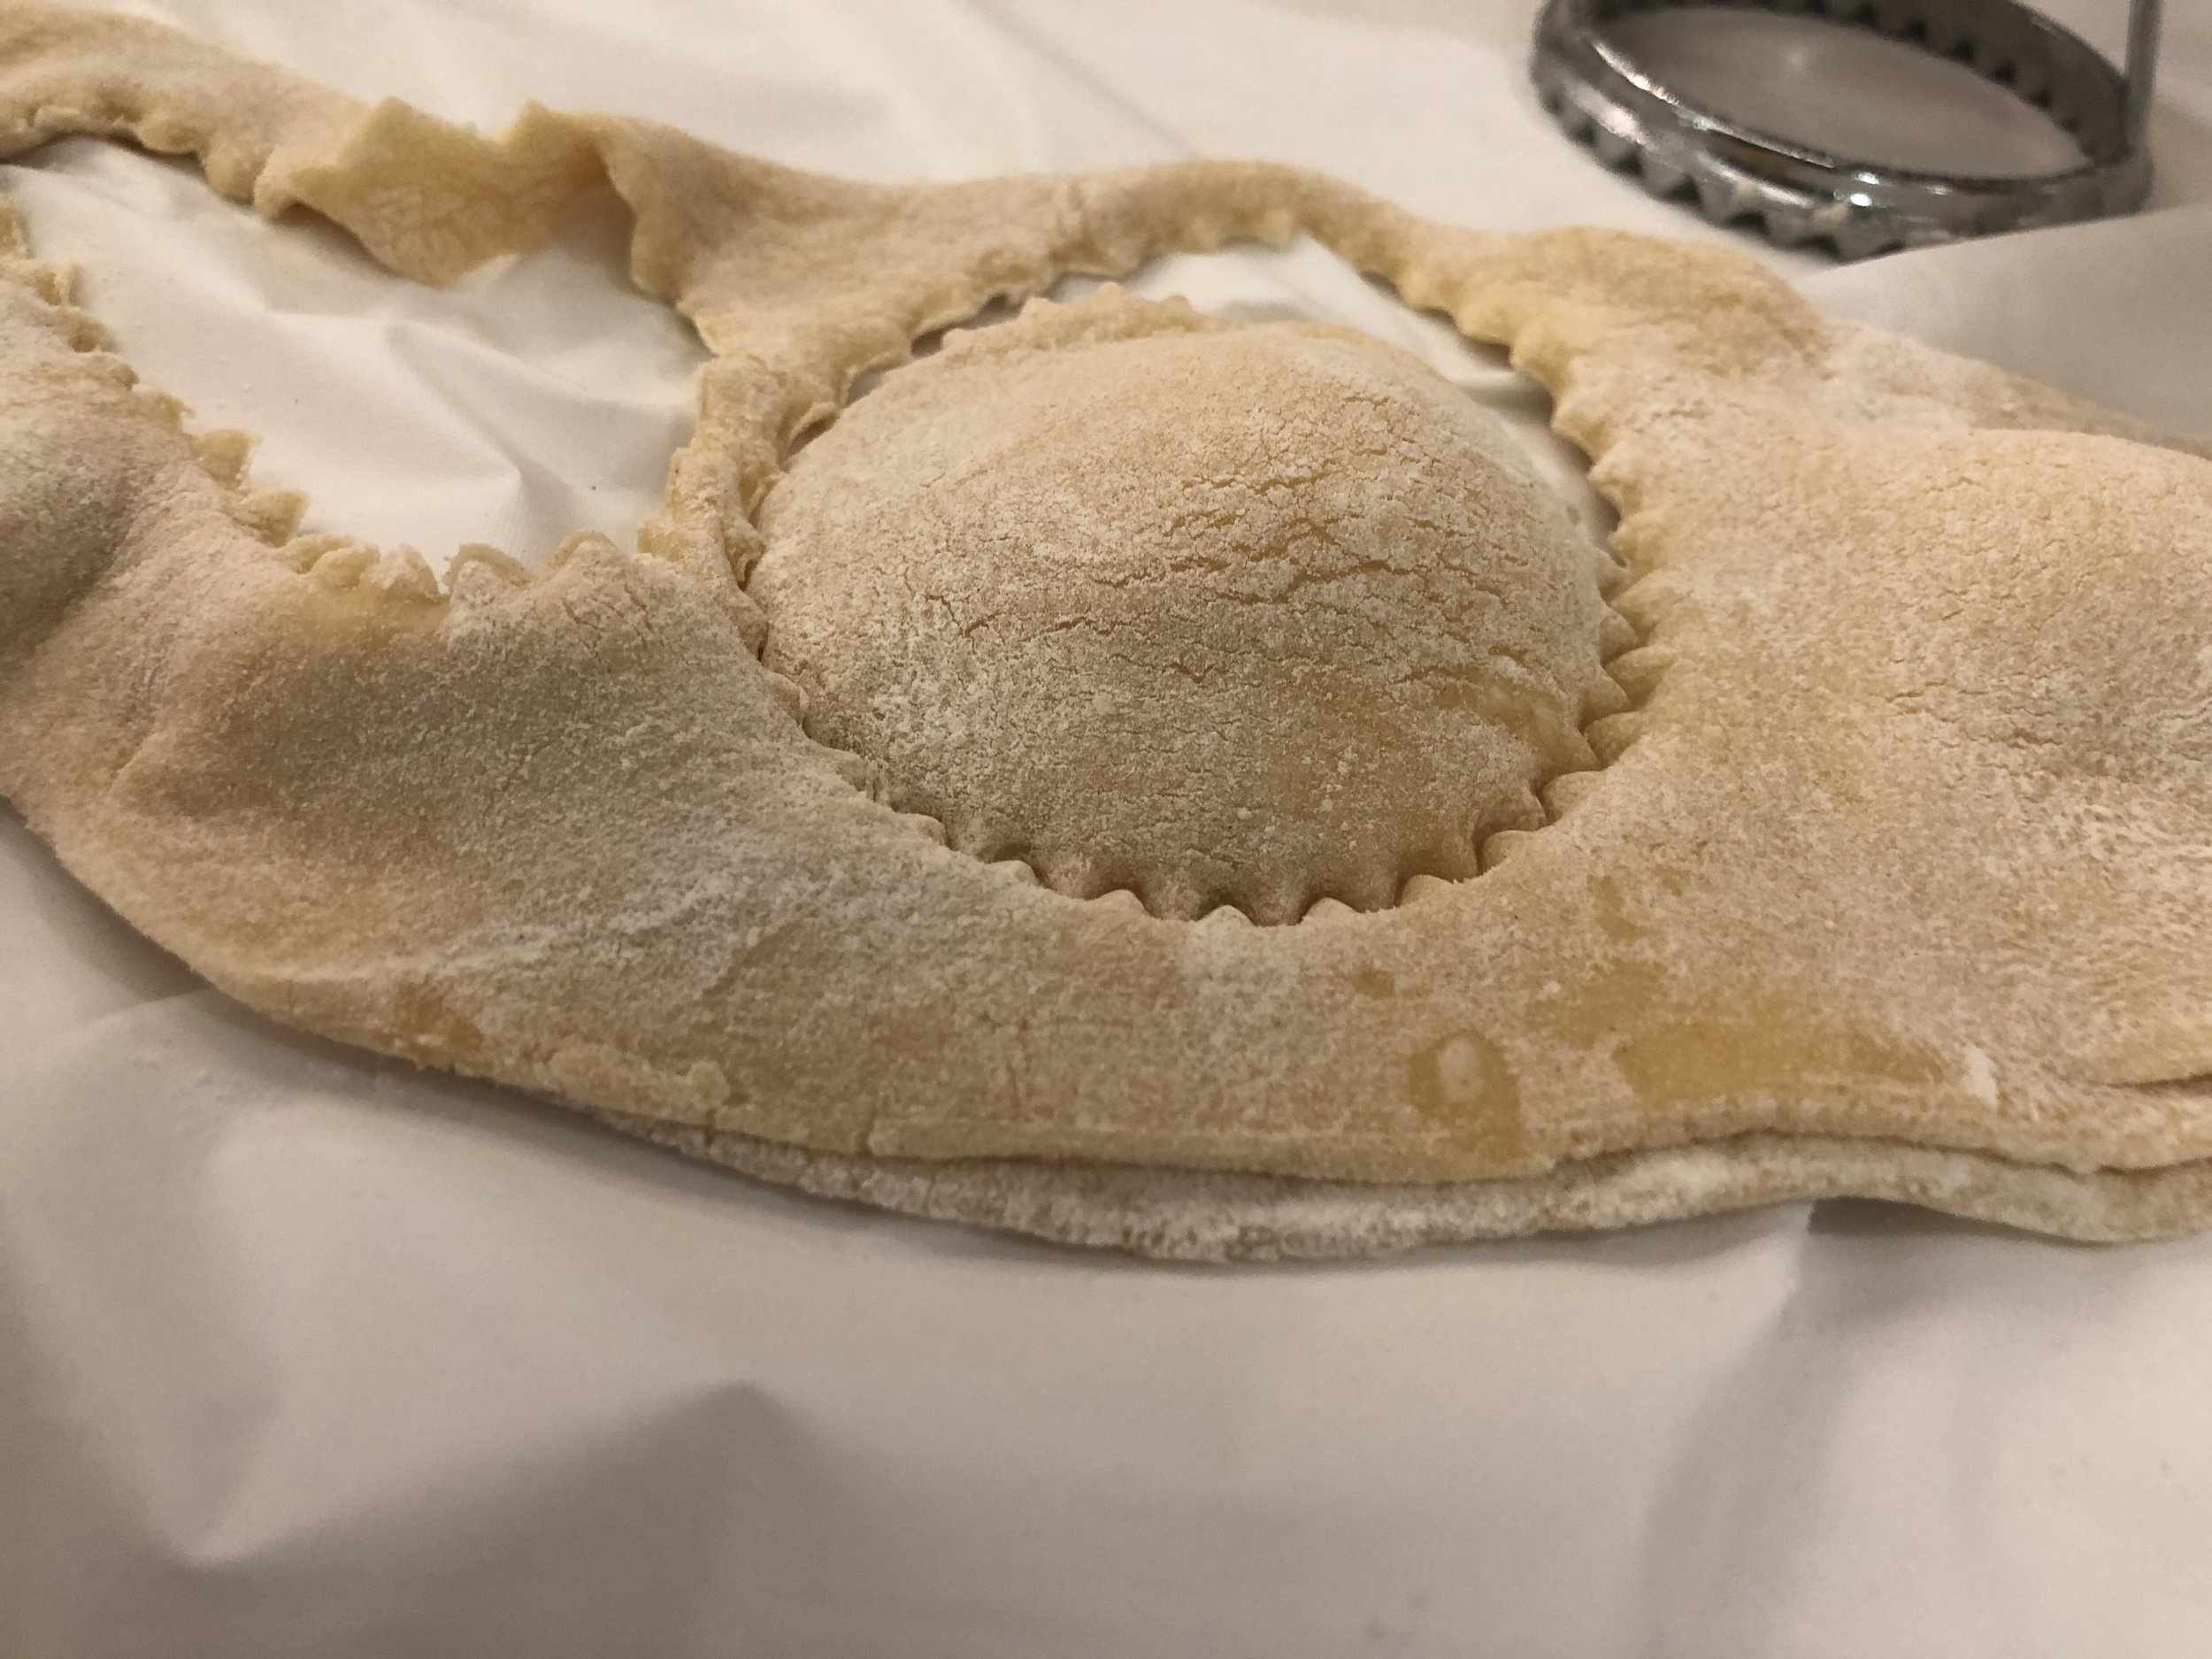 Fold the dough over so the filling make little mounds. Using your Ravioli cookie cutter, make individualized raviolis. Use your hand press around the filling of each, making individual raviolis.